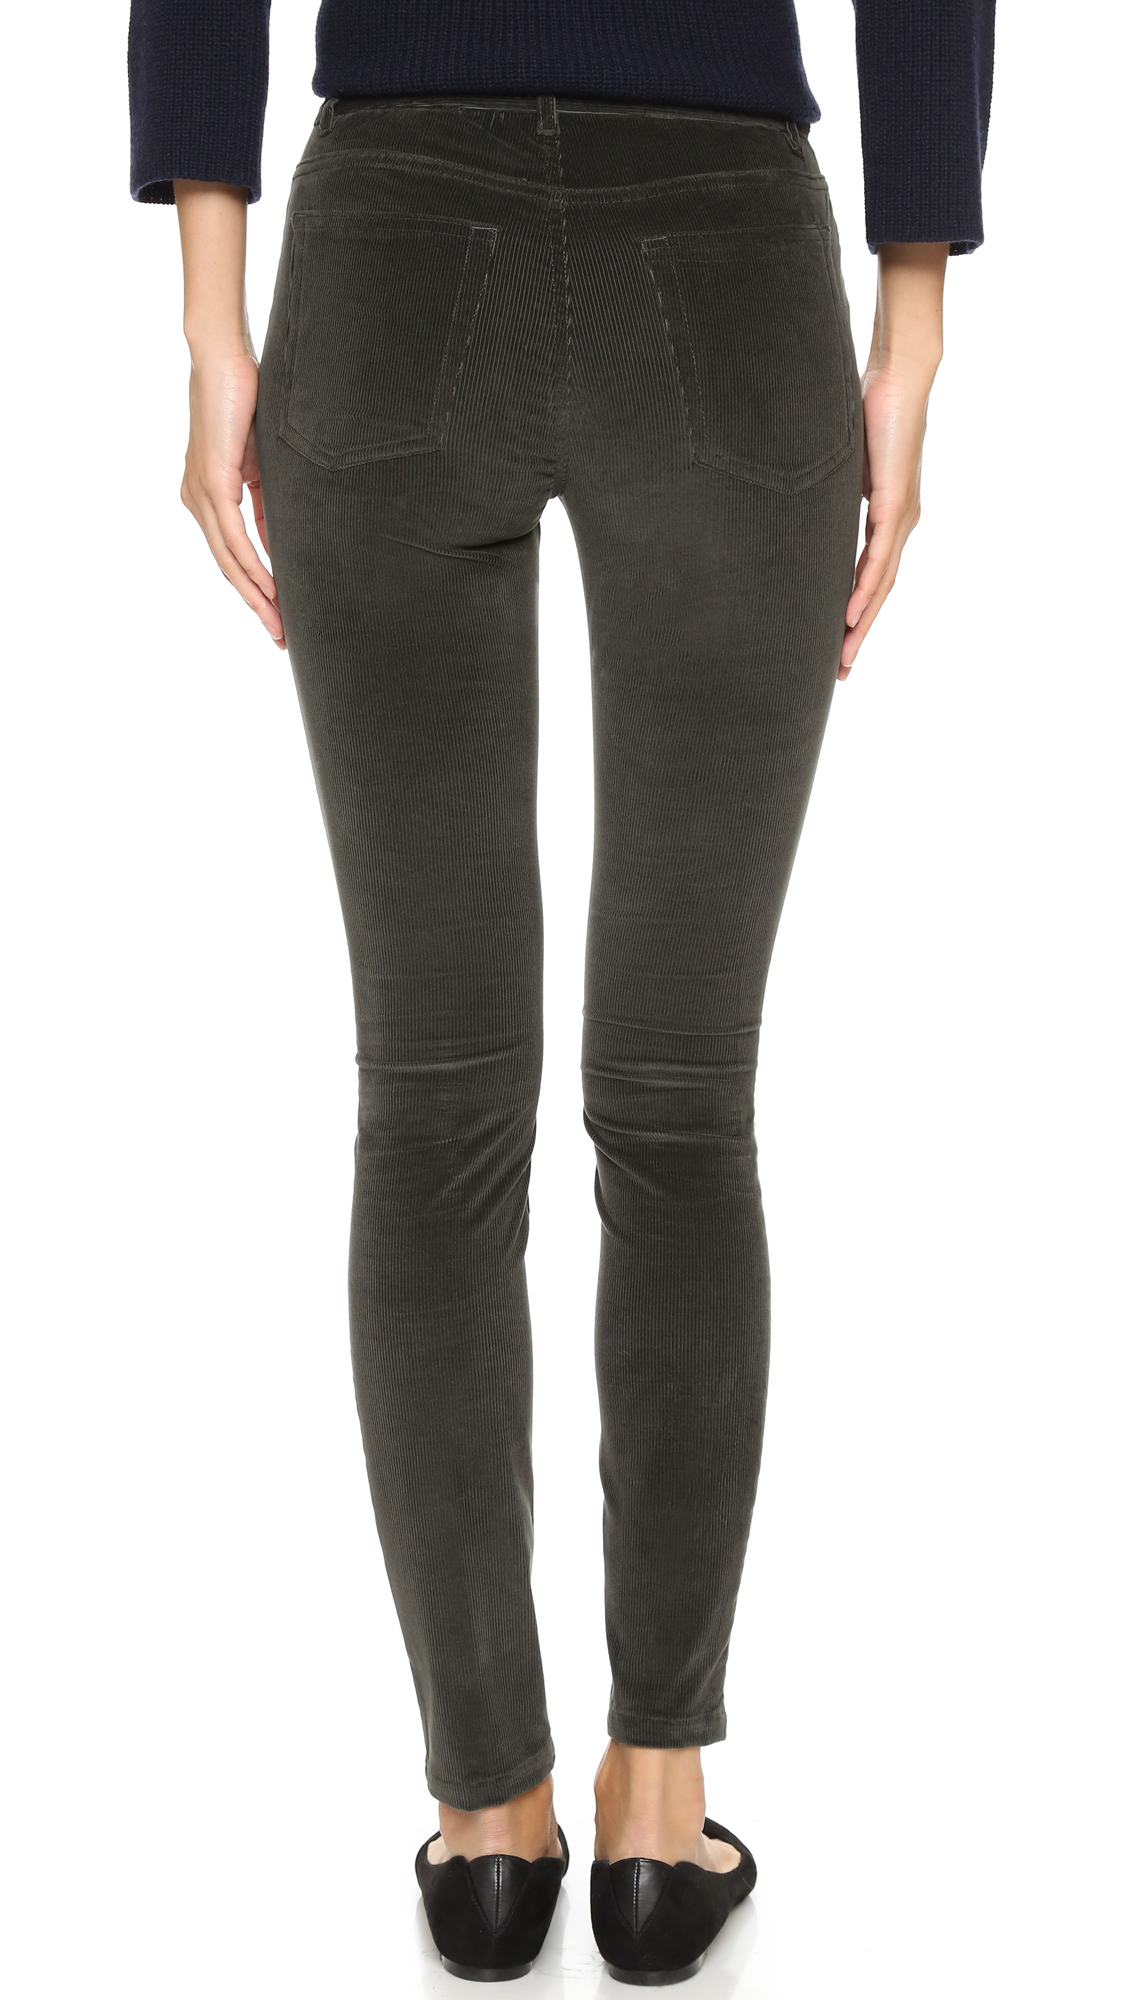 087291f9 A.P.C. High Standard Corduroy Pants in Gray - Lyst